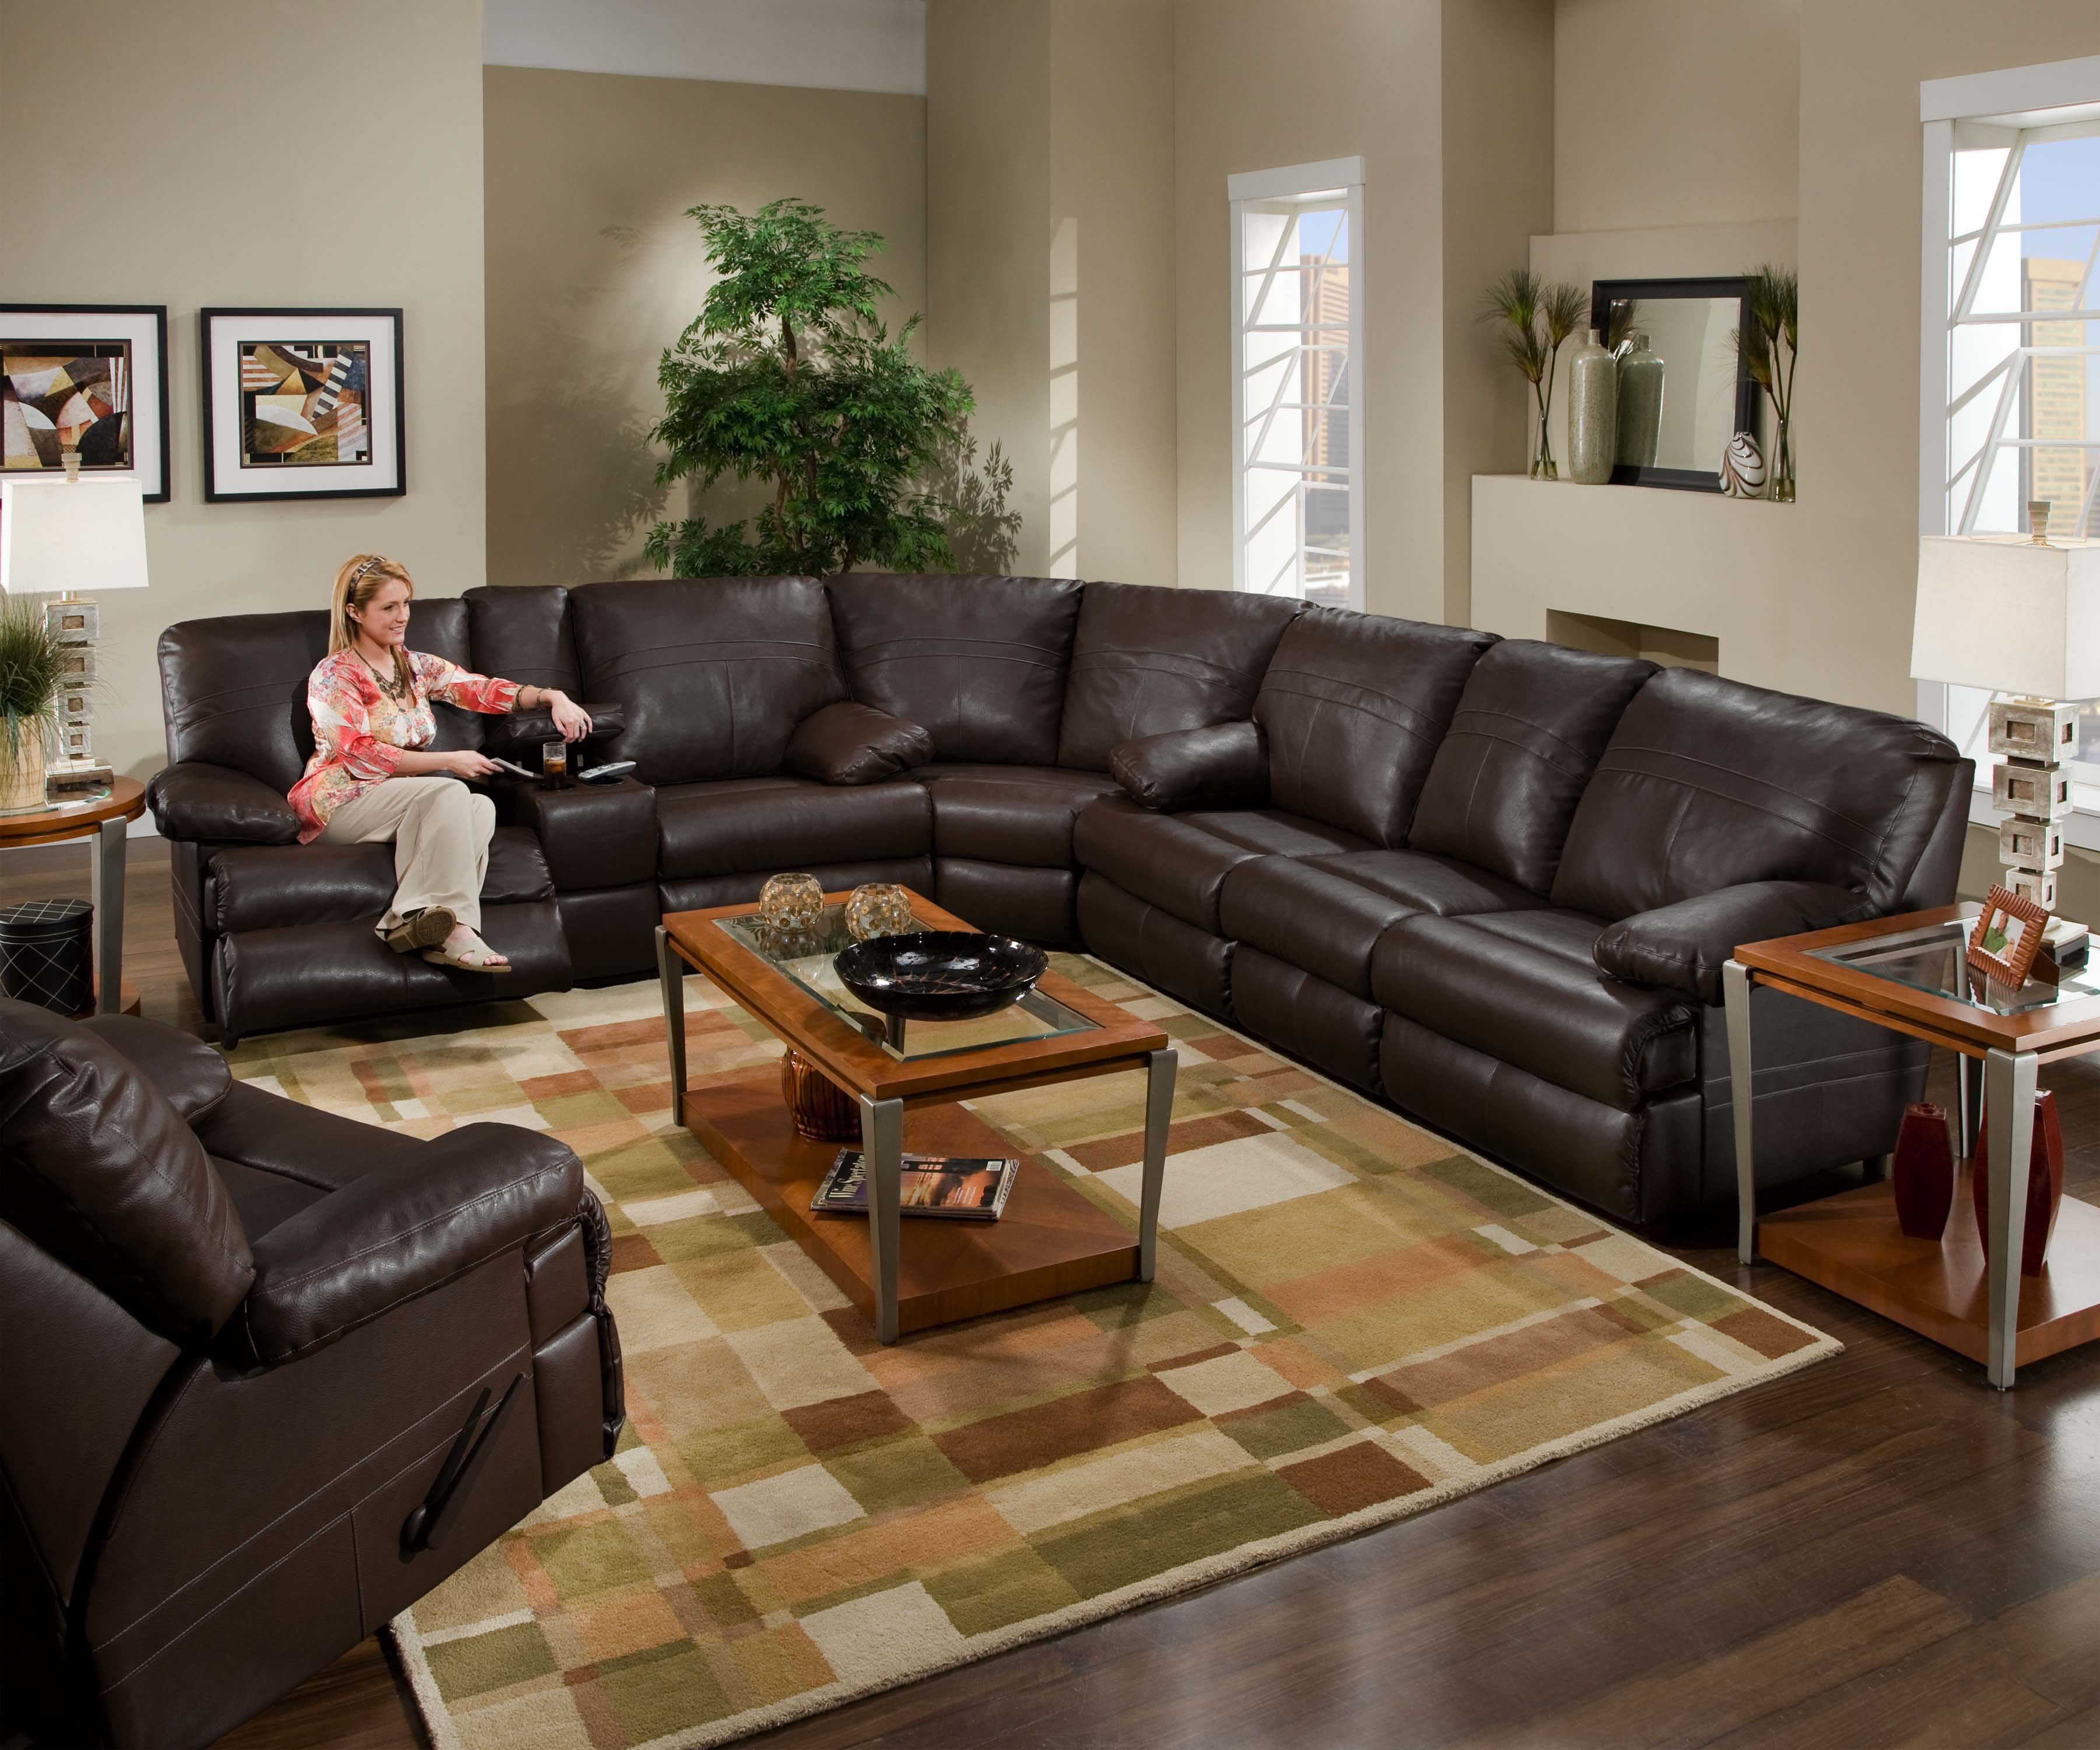 furniture elegant oversized sectionals sofa for living room dark brown leather reclined with rectangle coffee table idea ikea sectional sofas sleeper sectio end tables couch ethan